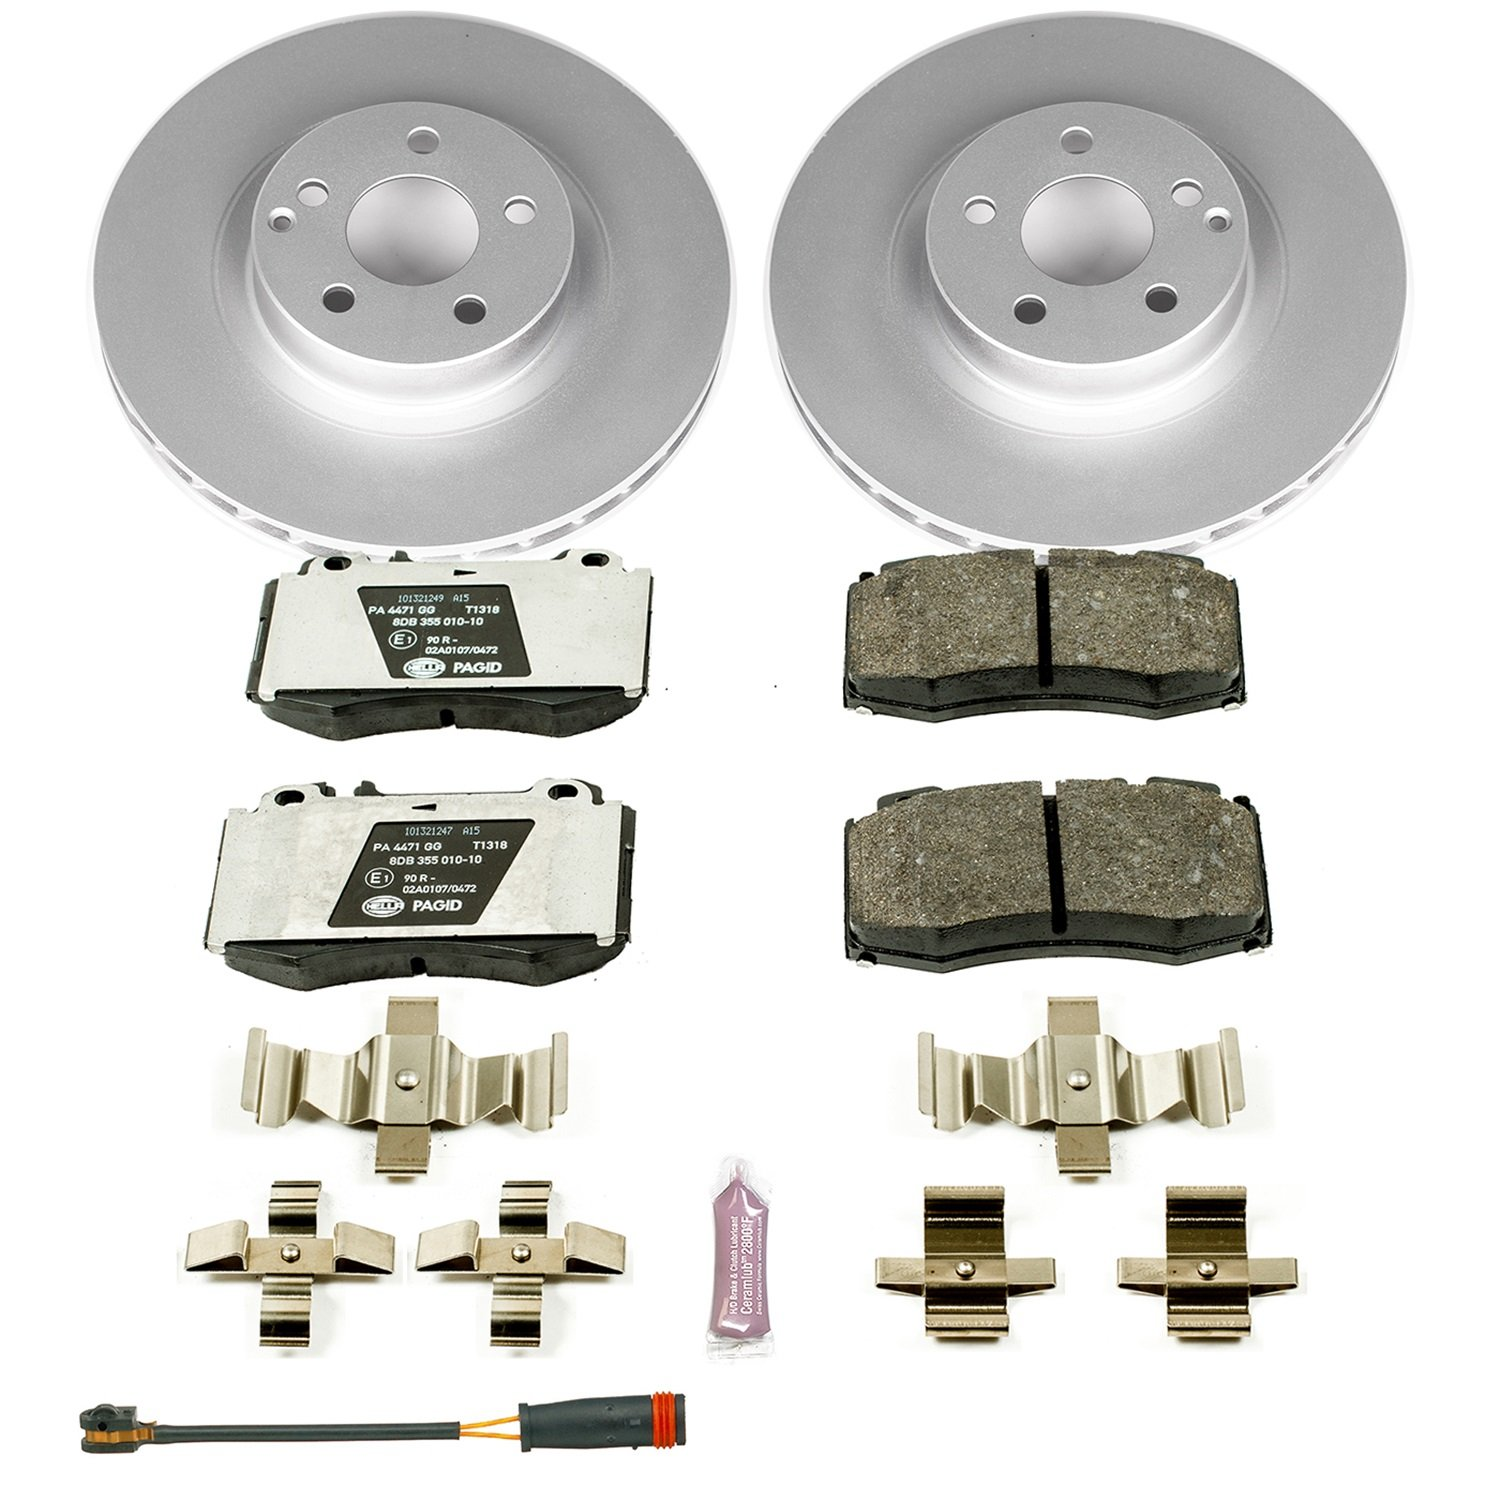 Power Stop ESK6601 Front Euro-Stop Brake Kit by Power Stop